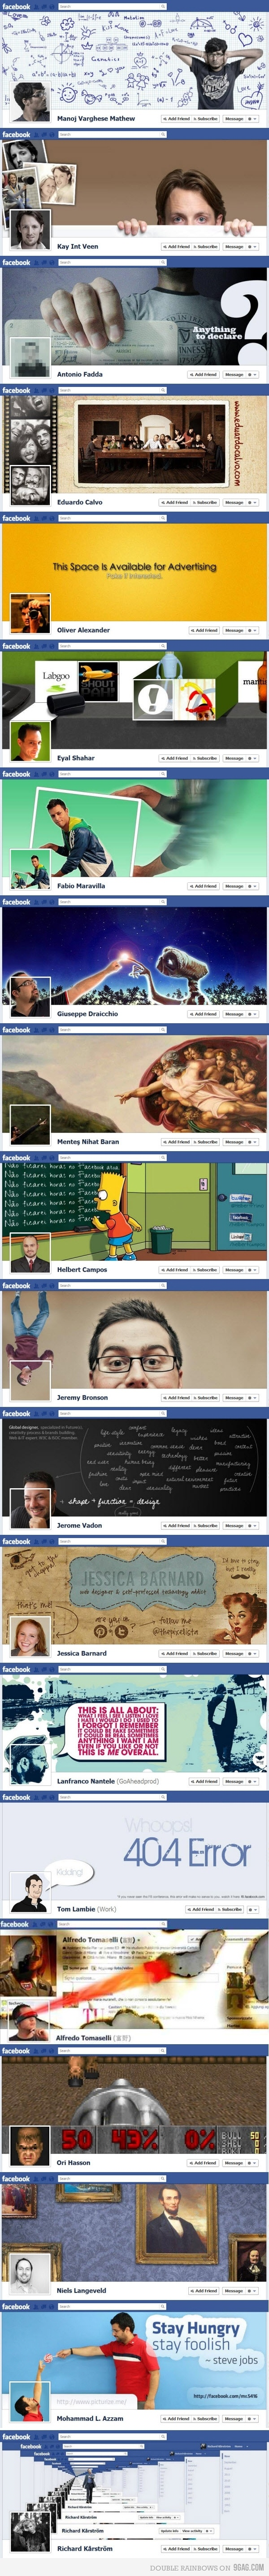 Fun ways to pimp your facebook timeline profile. Now I find mine boring and will have to change it. UPDATE: somebody didn't like the site this came from (9gag.com) and flagged the content as inappropriate (it may be for you). If you want to see this picture blown up you can type 9gag.com into your browser and search for this post or try looking at many of the same images here: http://inspirationfeed.com/inspiration/websites-inspiration/40-creative-examples-of-facebook-timeline-designs/